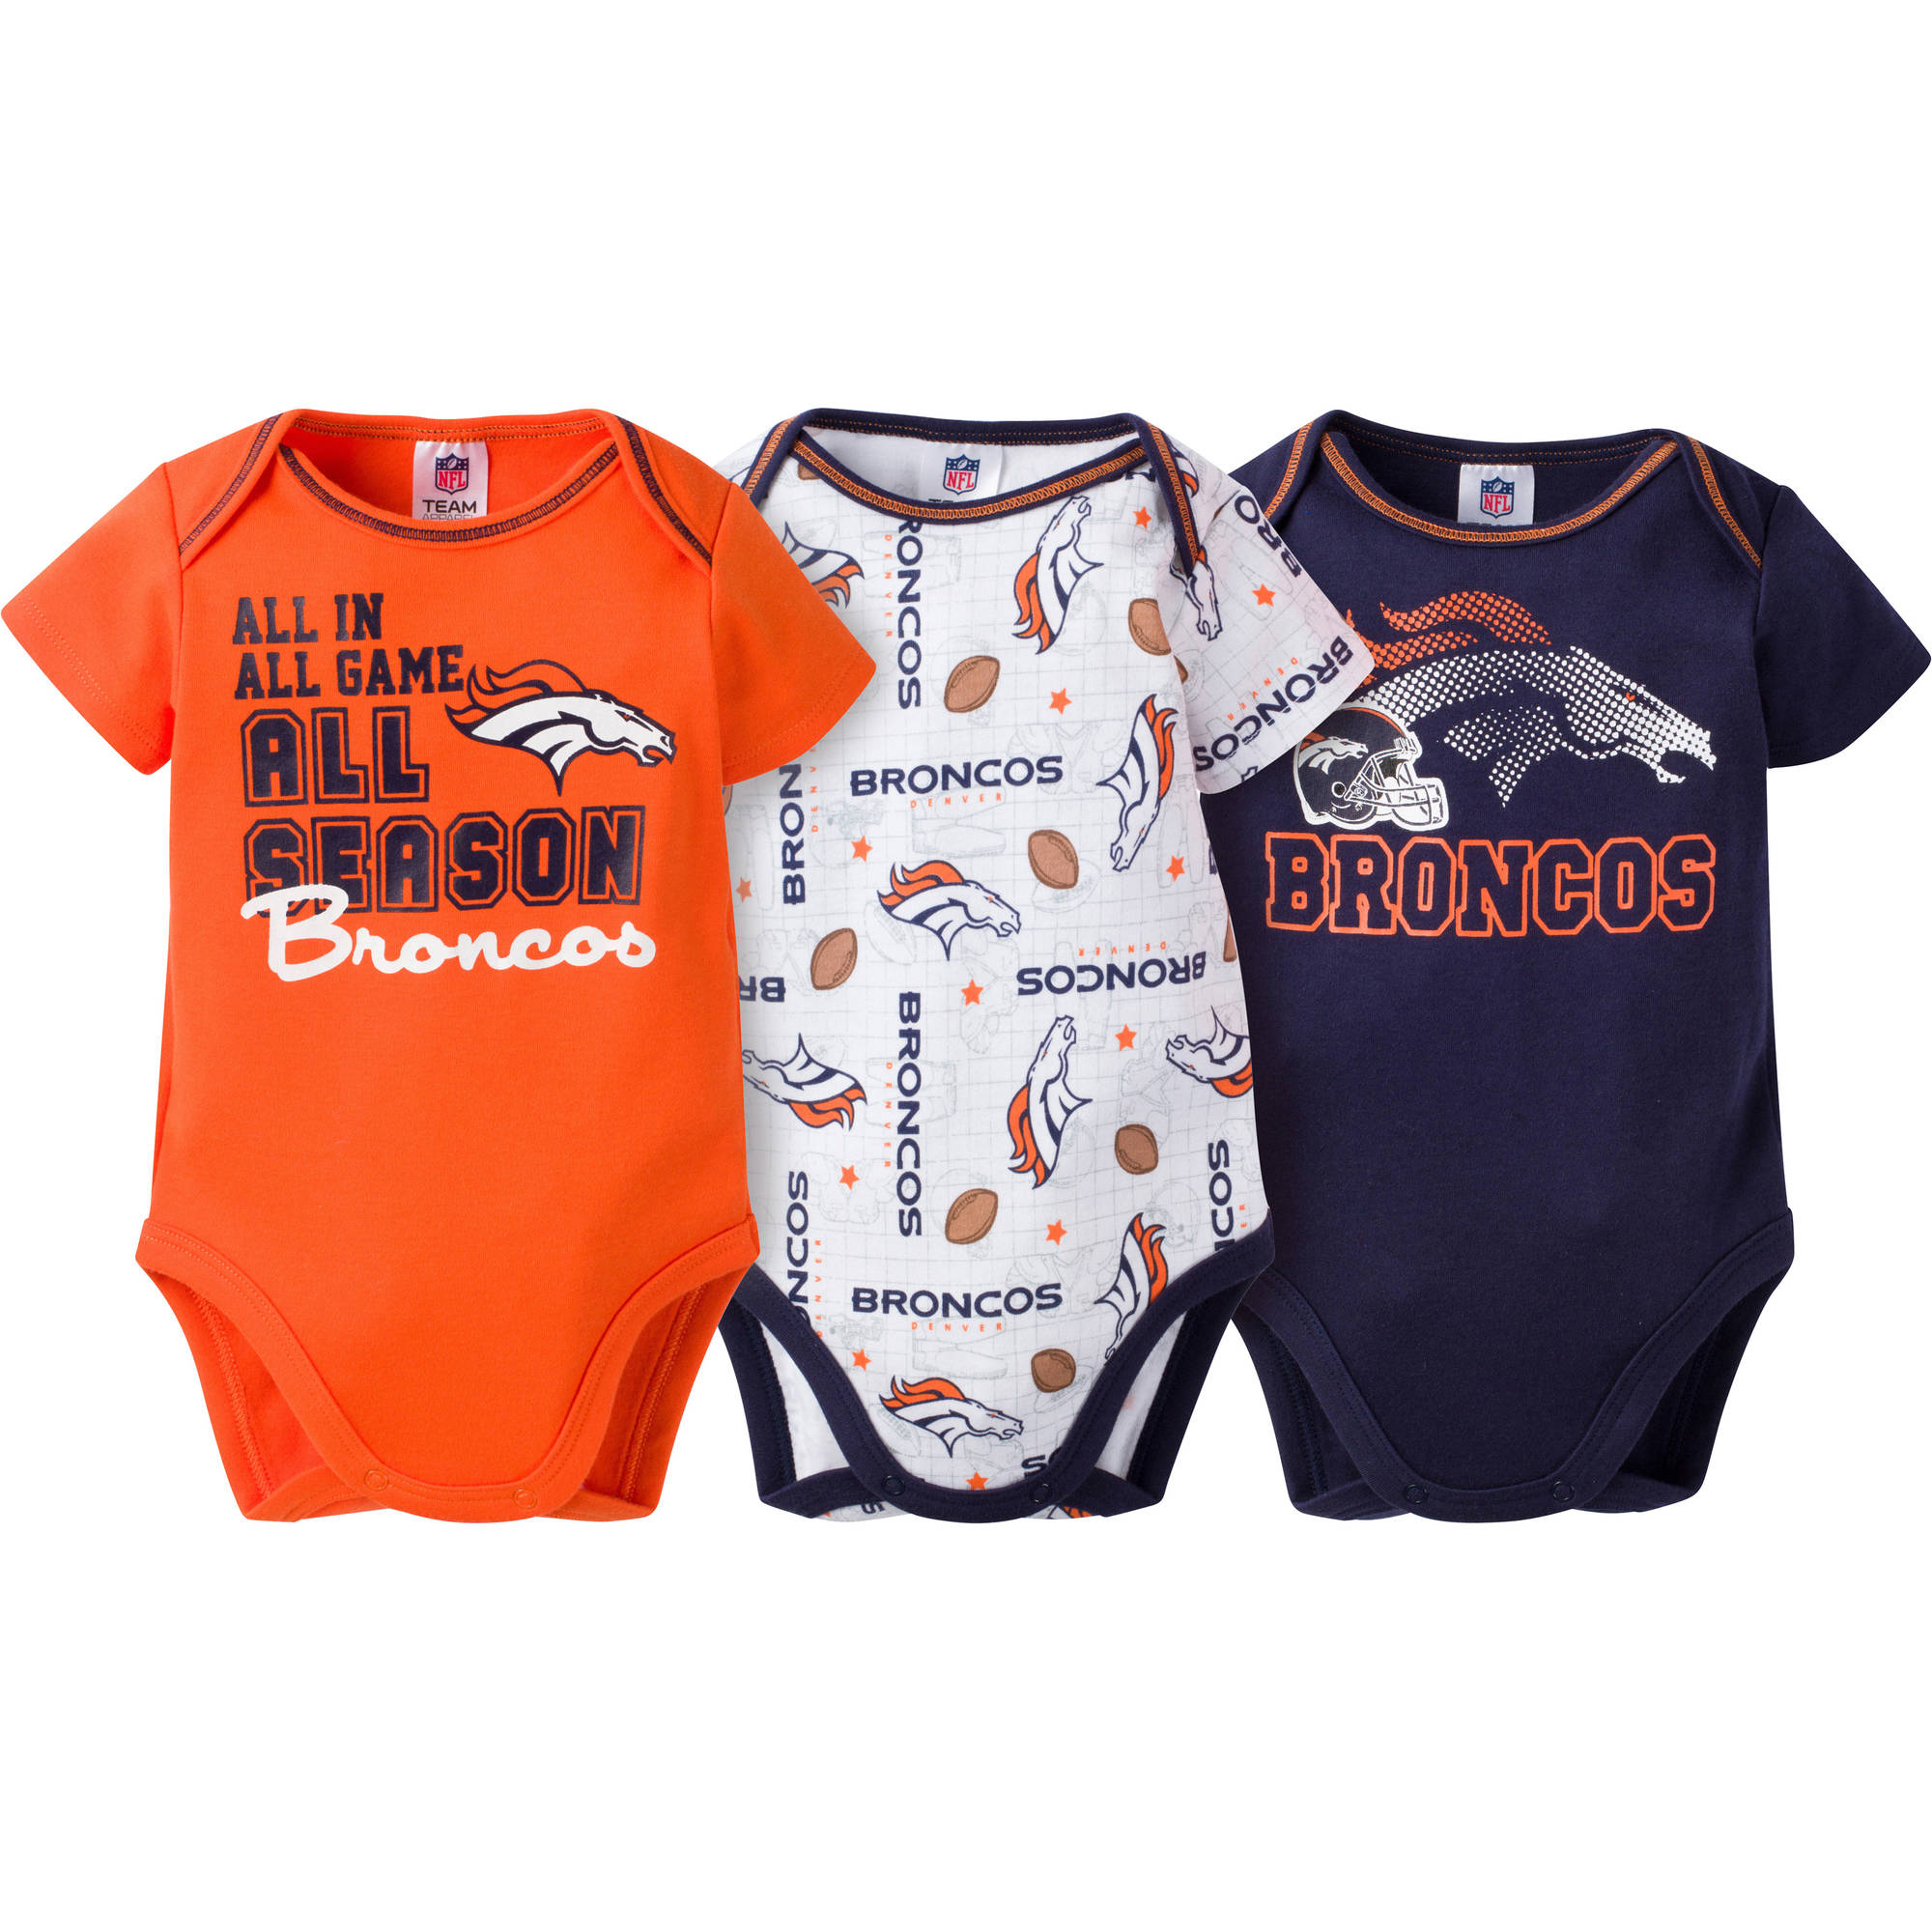 NFL Denver Broncos Baby Boy Game Day Gear - Walmart.com 7e40bf606